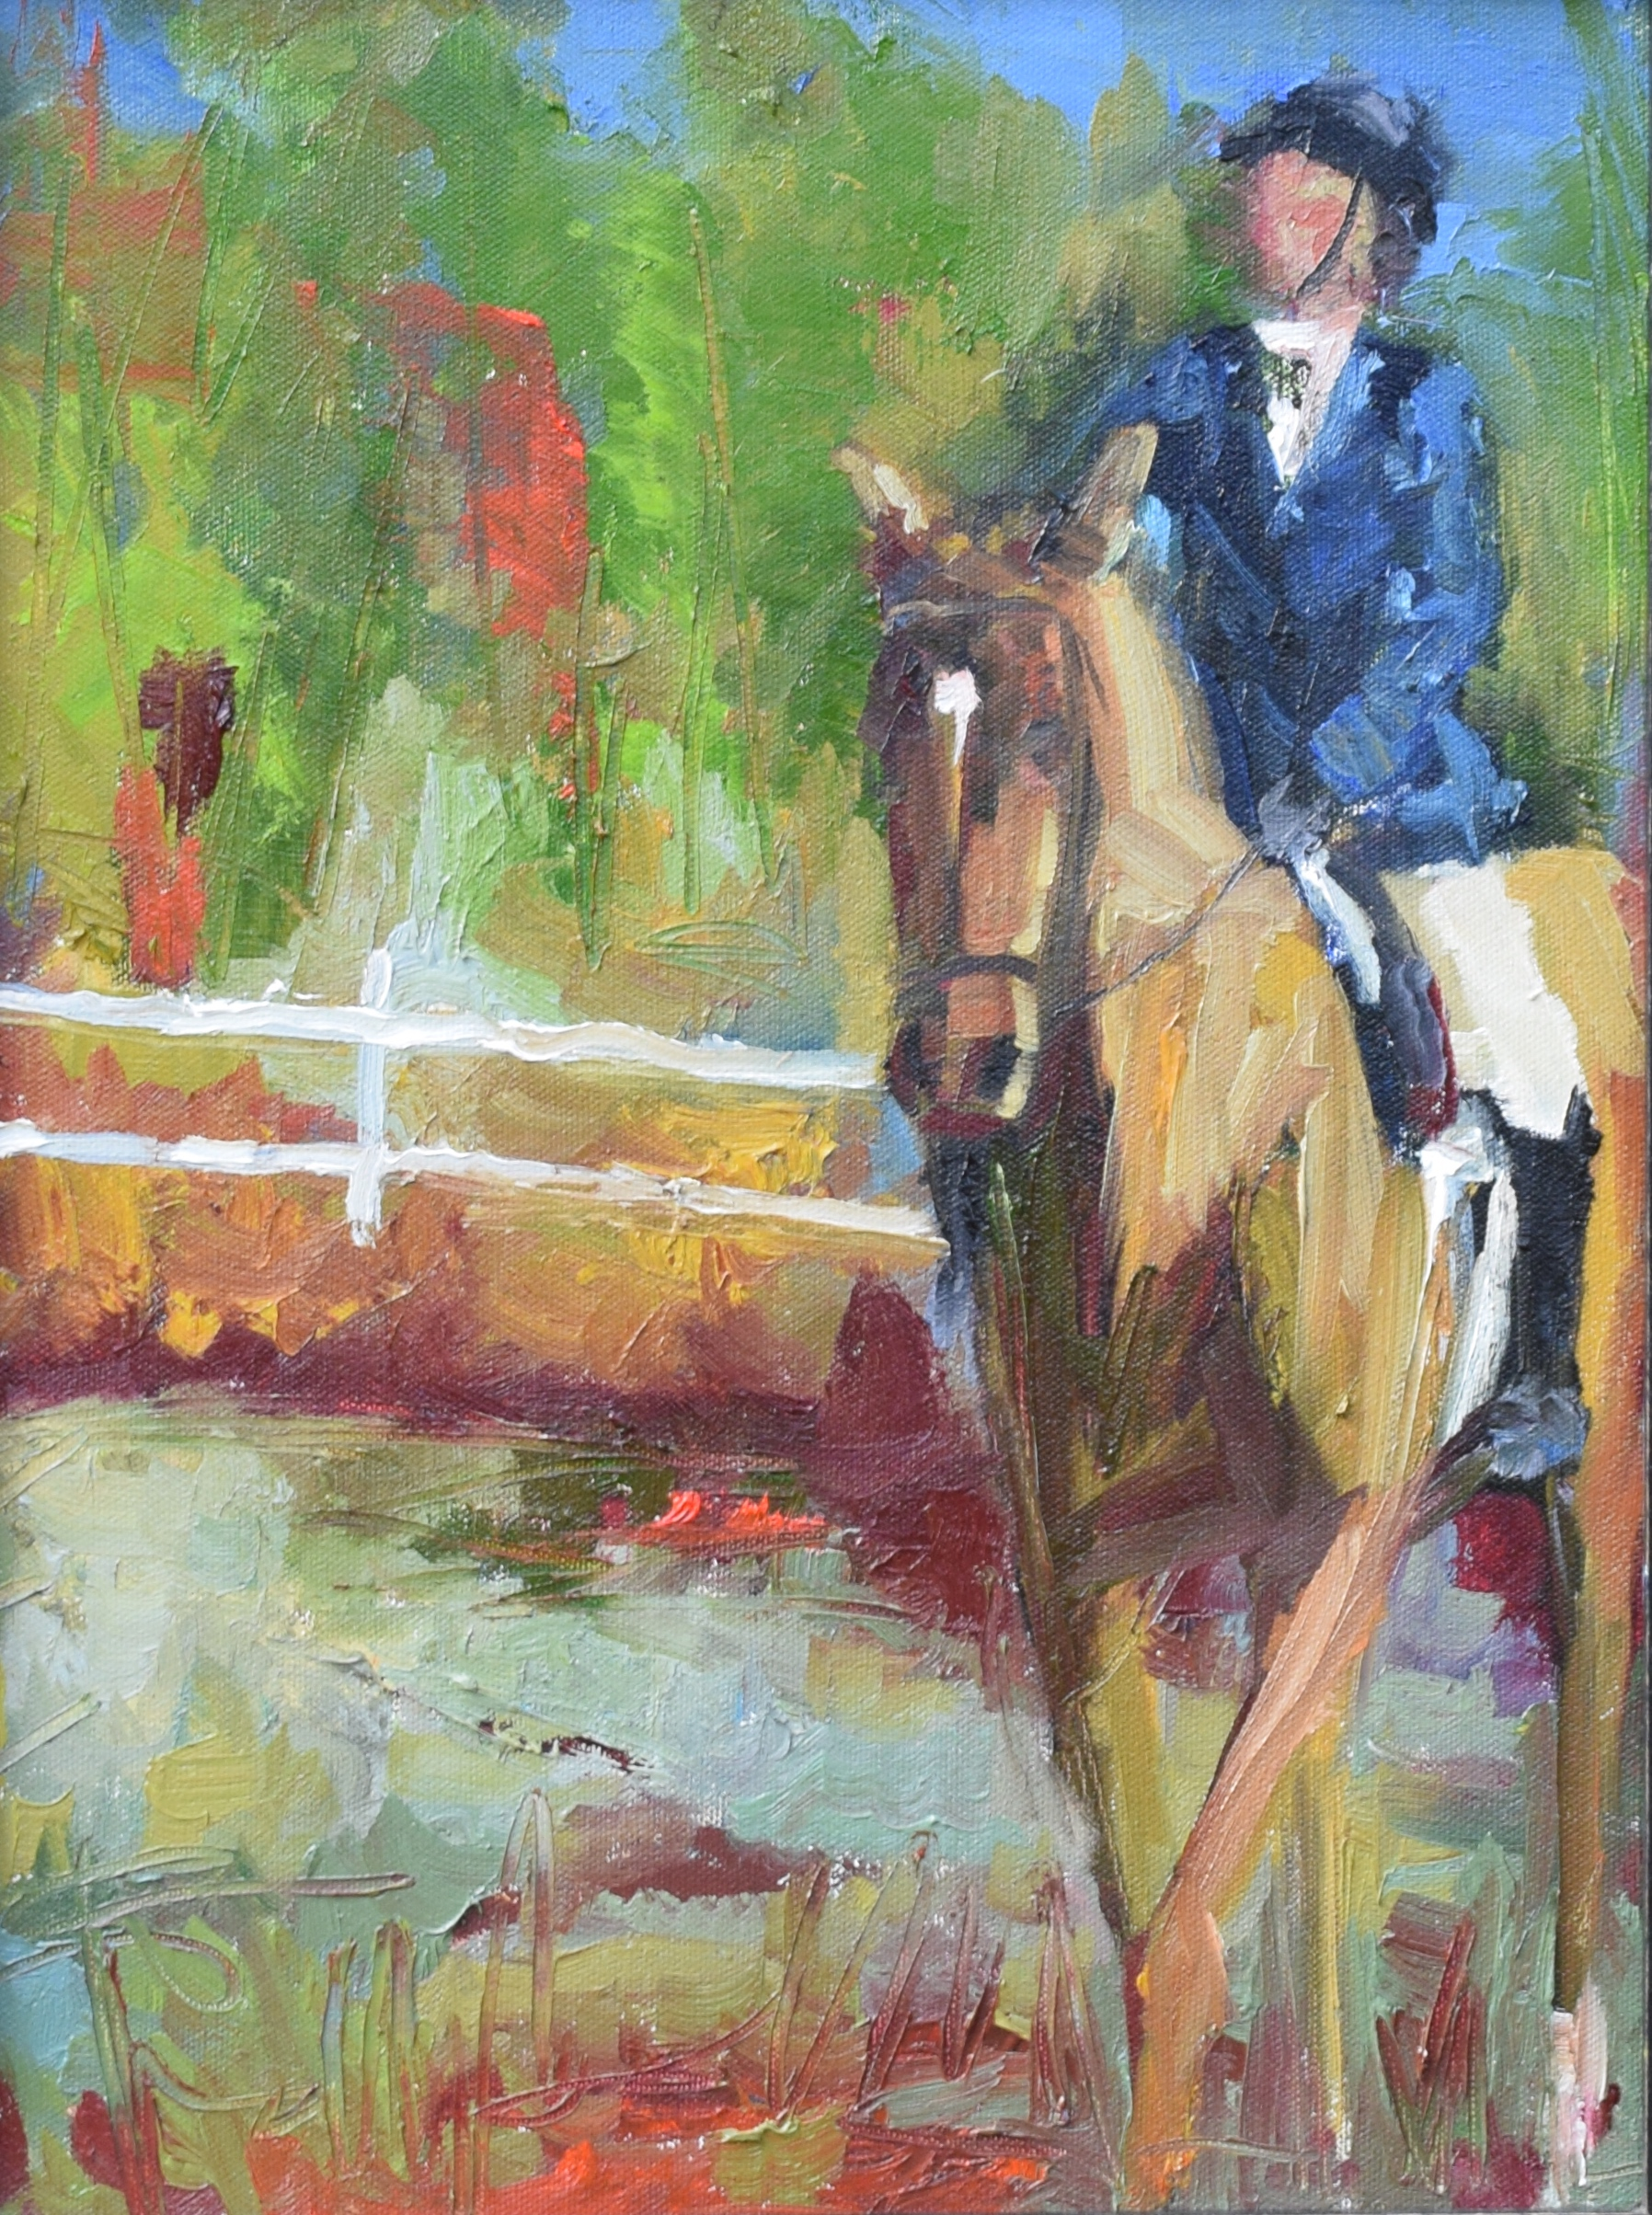 Dressage (16x12 Canvas) - Sold